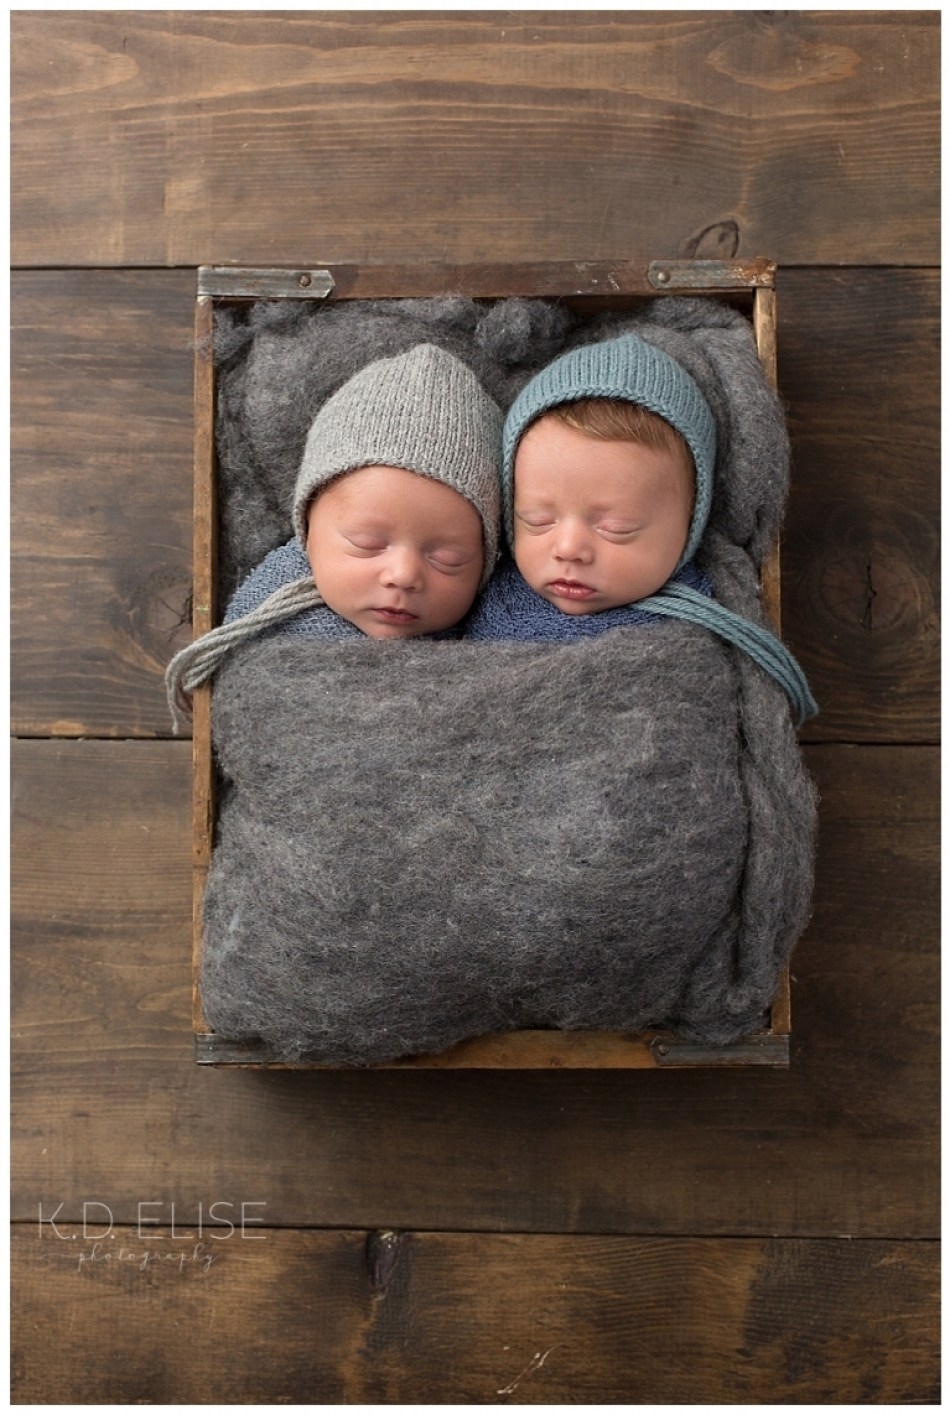 Newborn twin boys laying in a wooden crate, wrapped in grey fur.